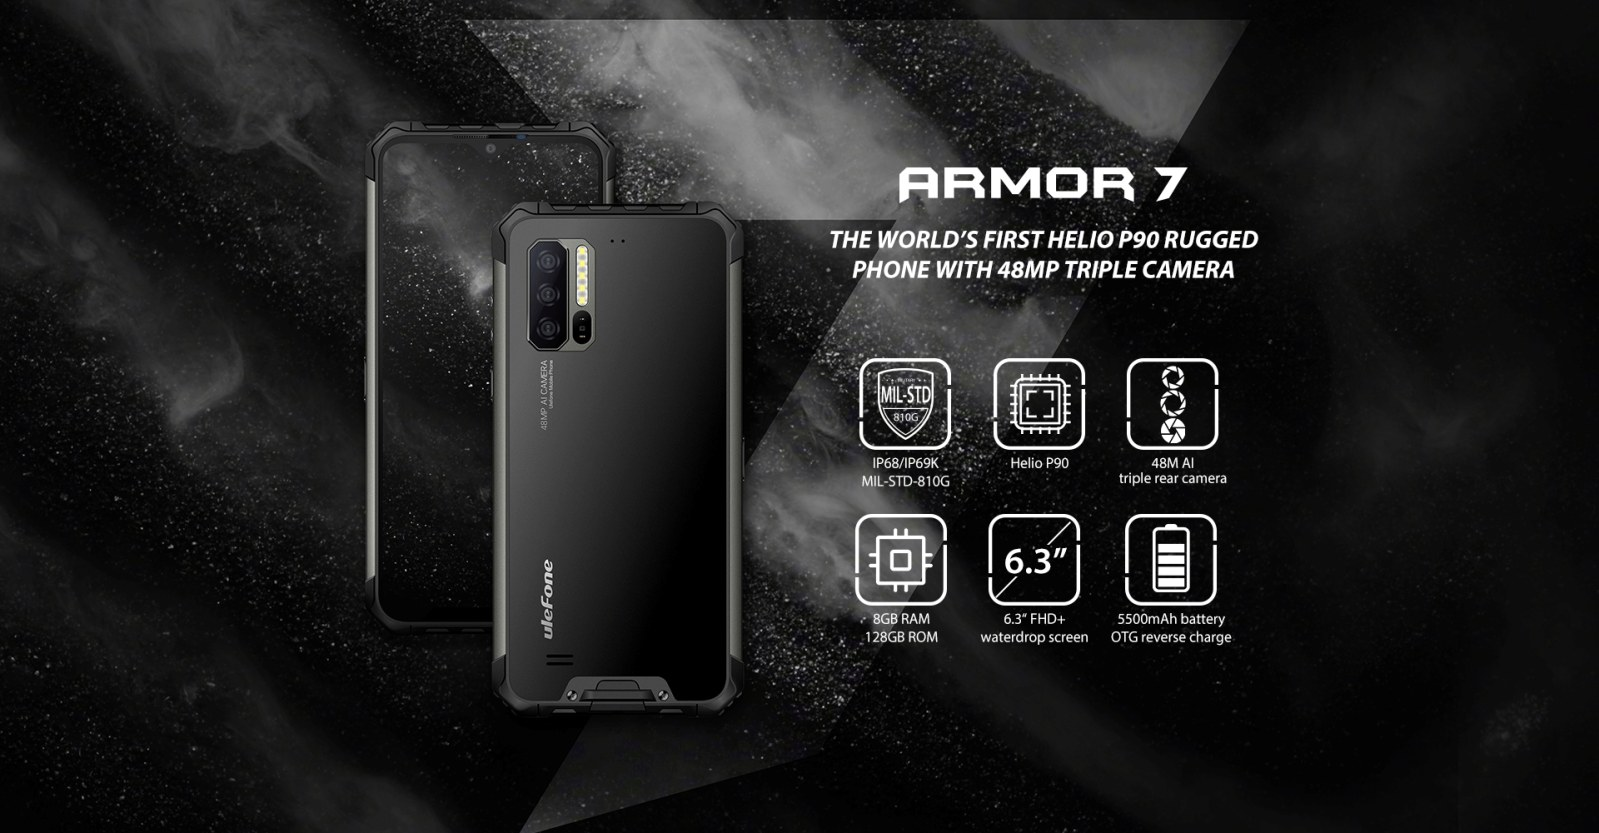 ulefone armor 7 highlight specifications